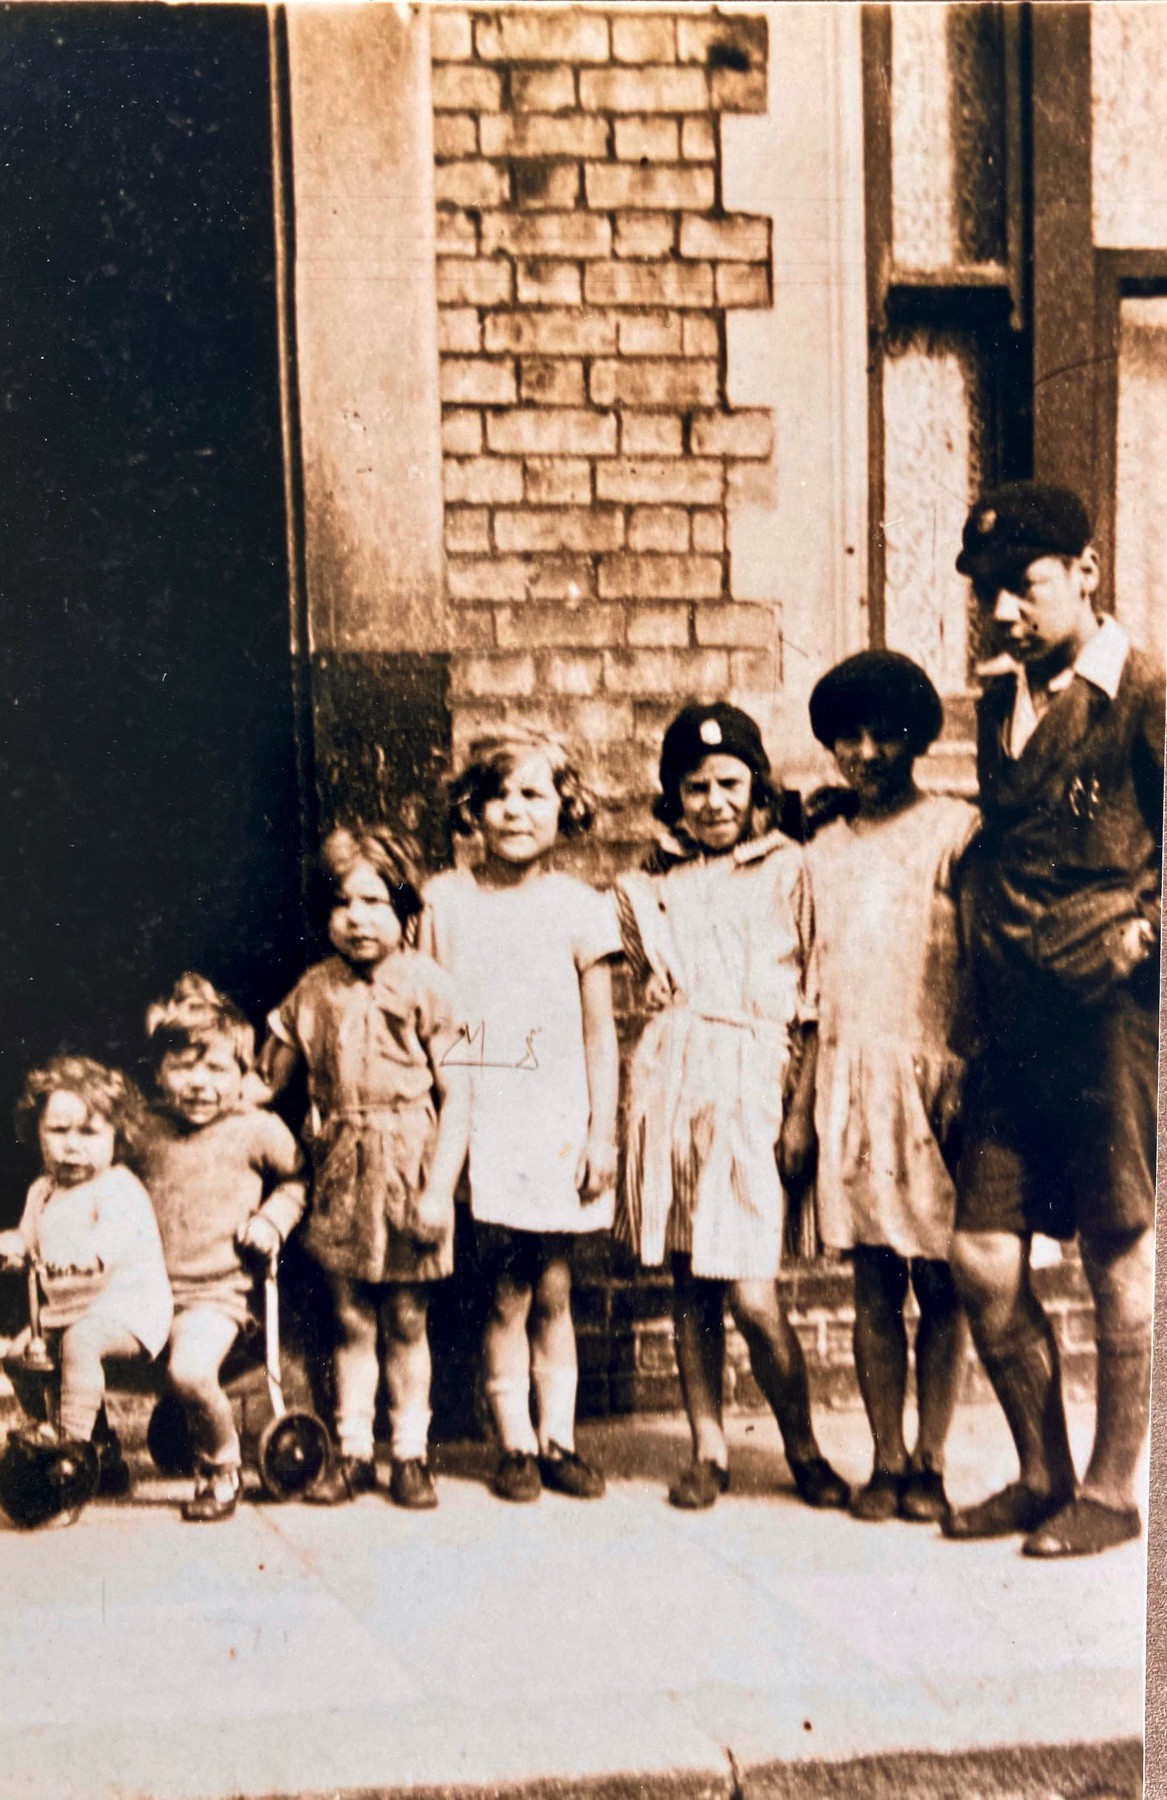 Lineup of 7 children an 1928. Dad is on the right.